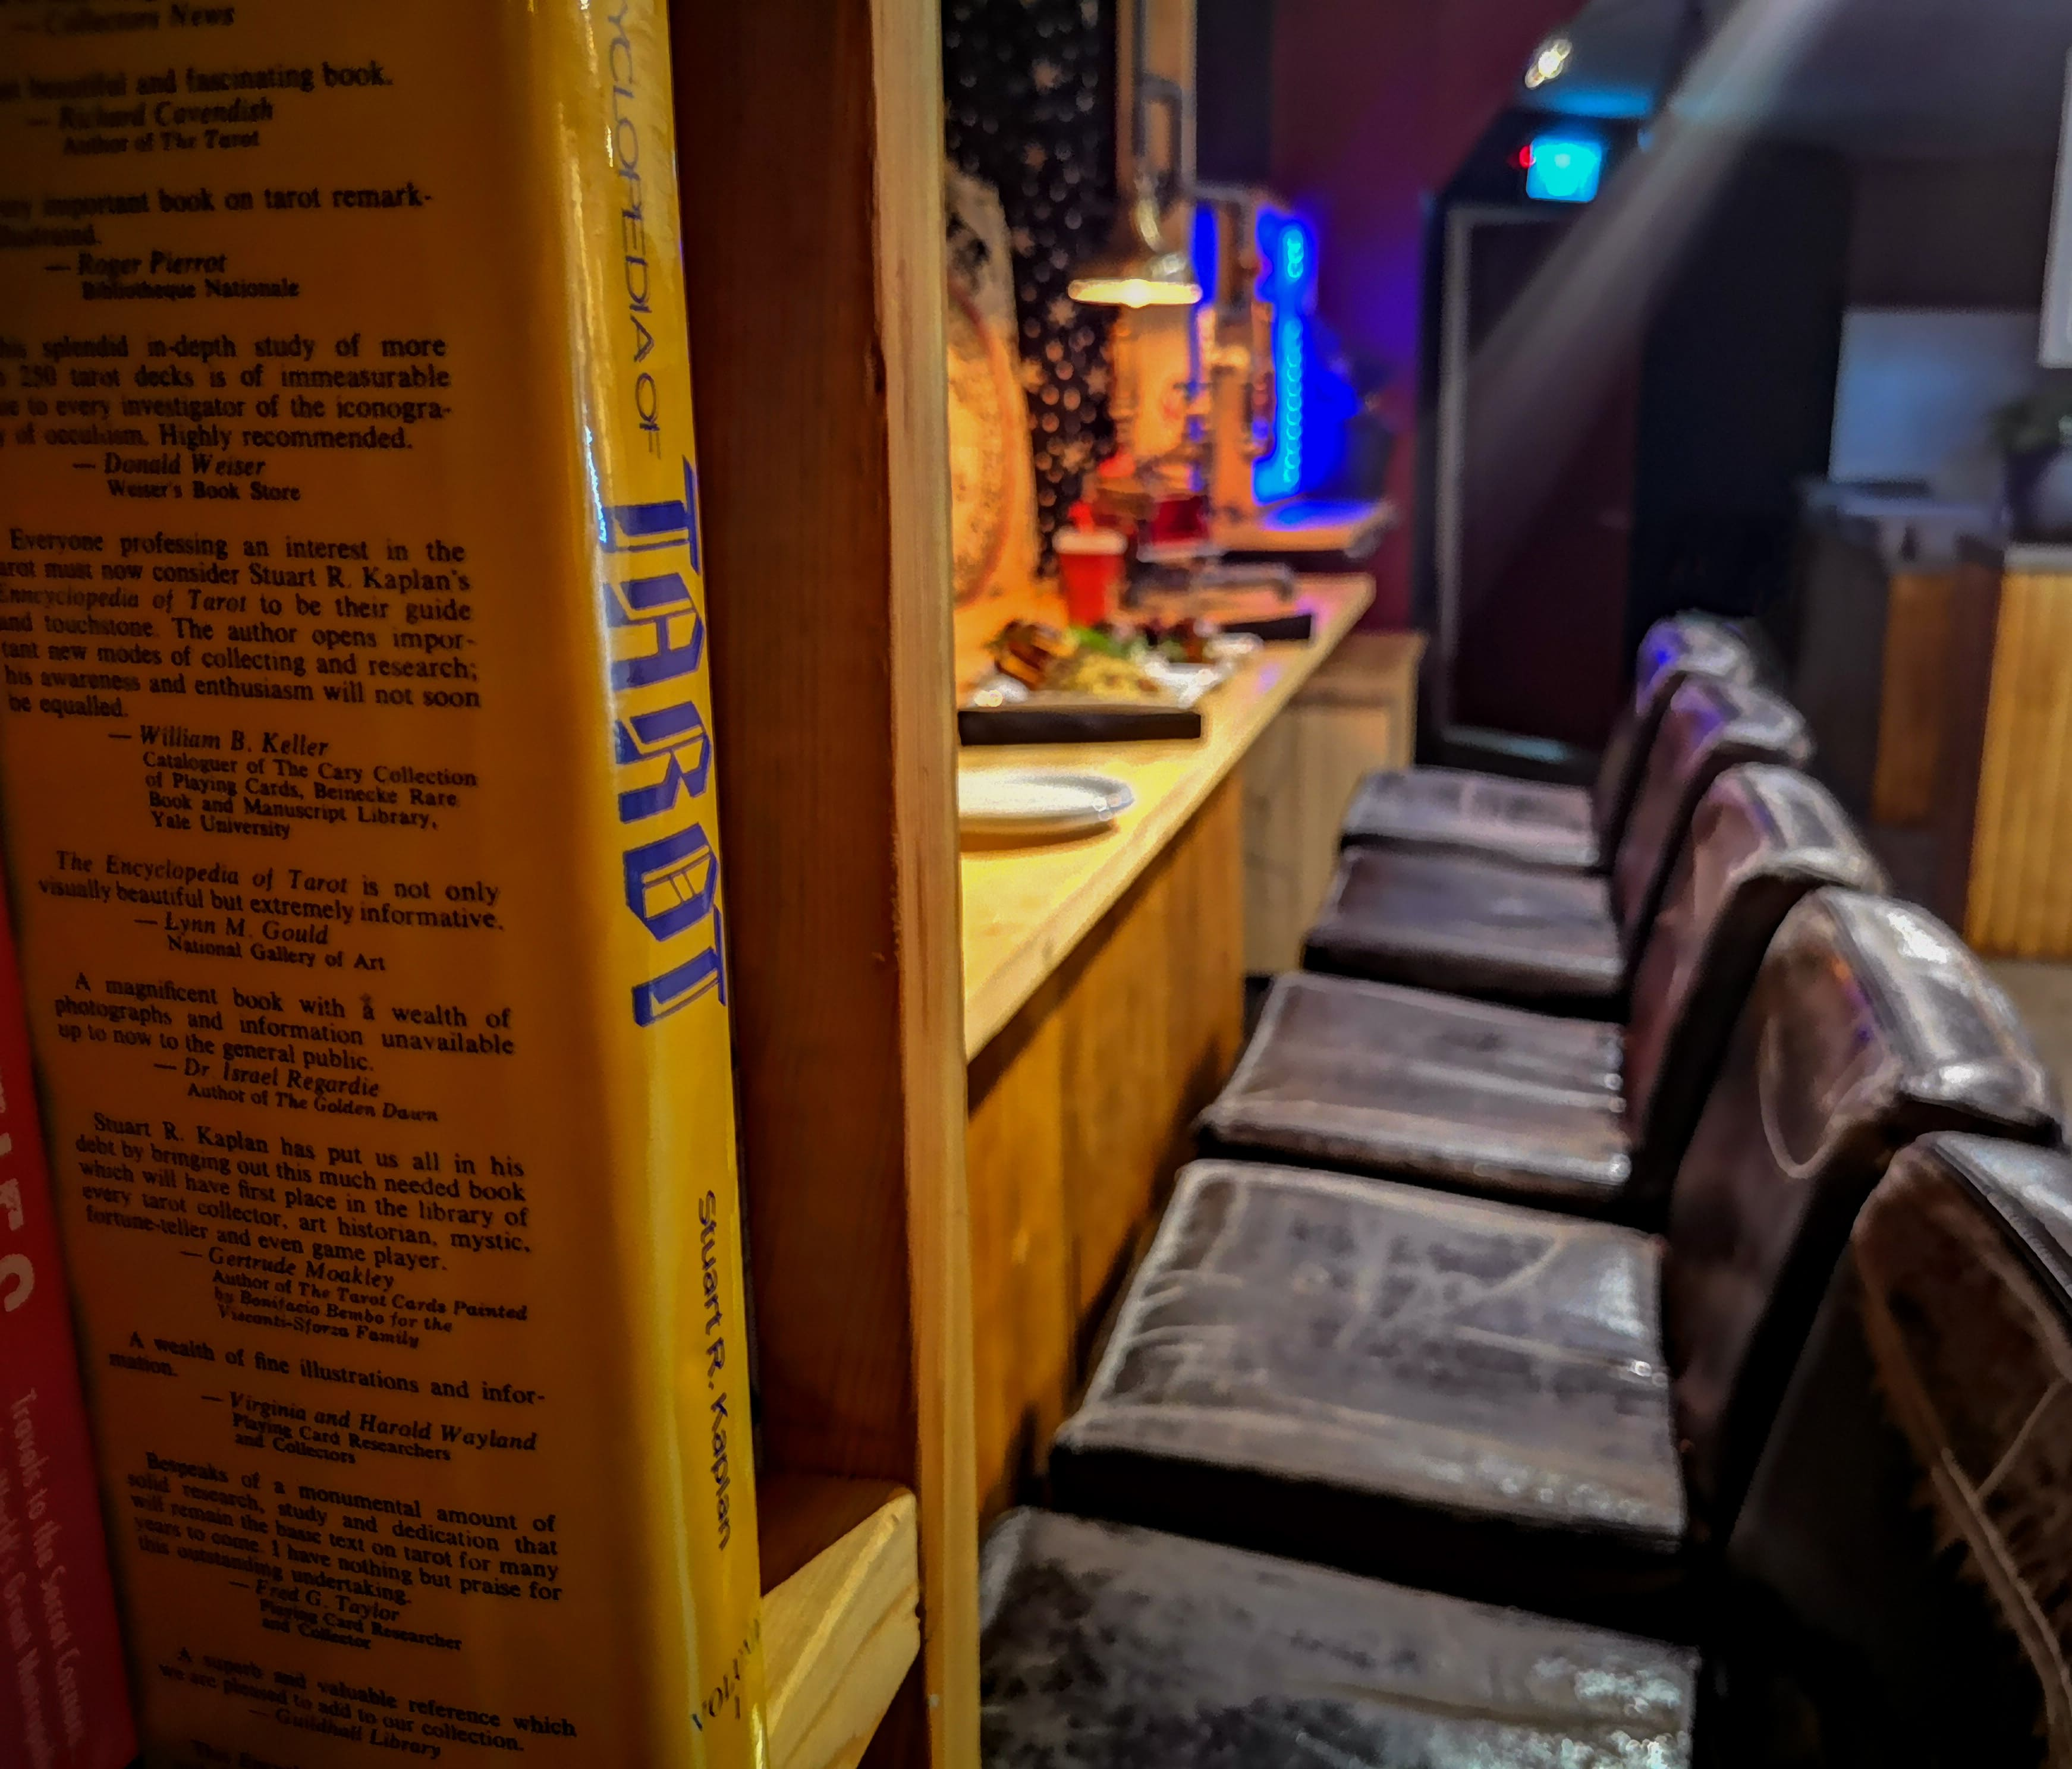 Tarot book on a bookshelf in foreground, food and drink setup on the bar in background